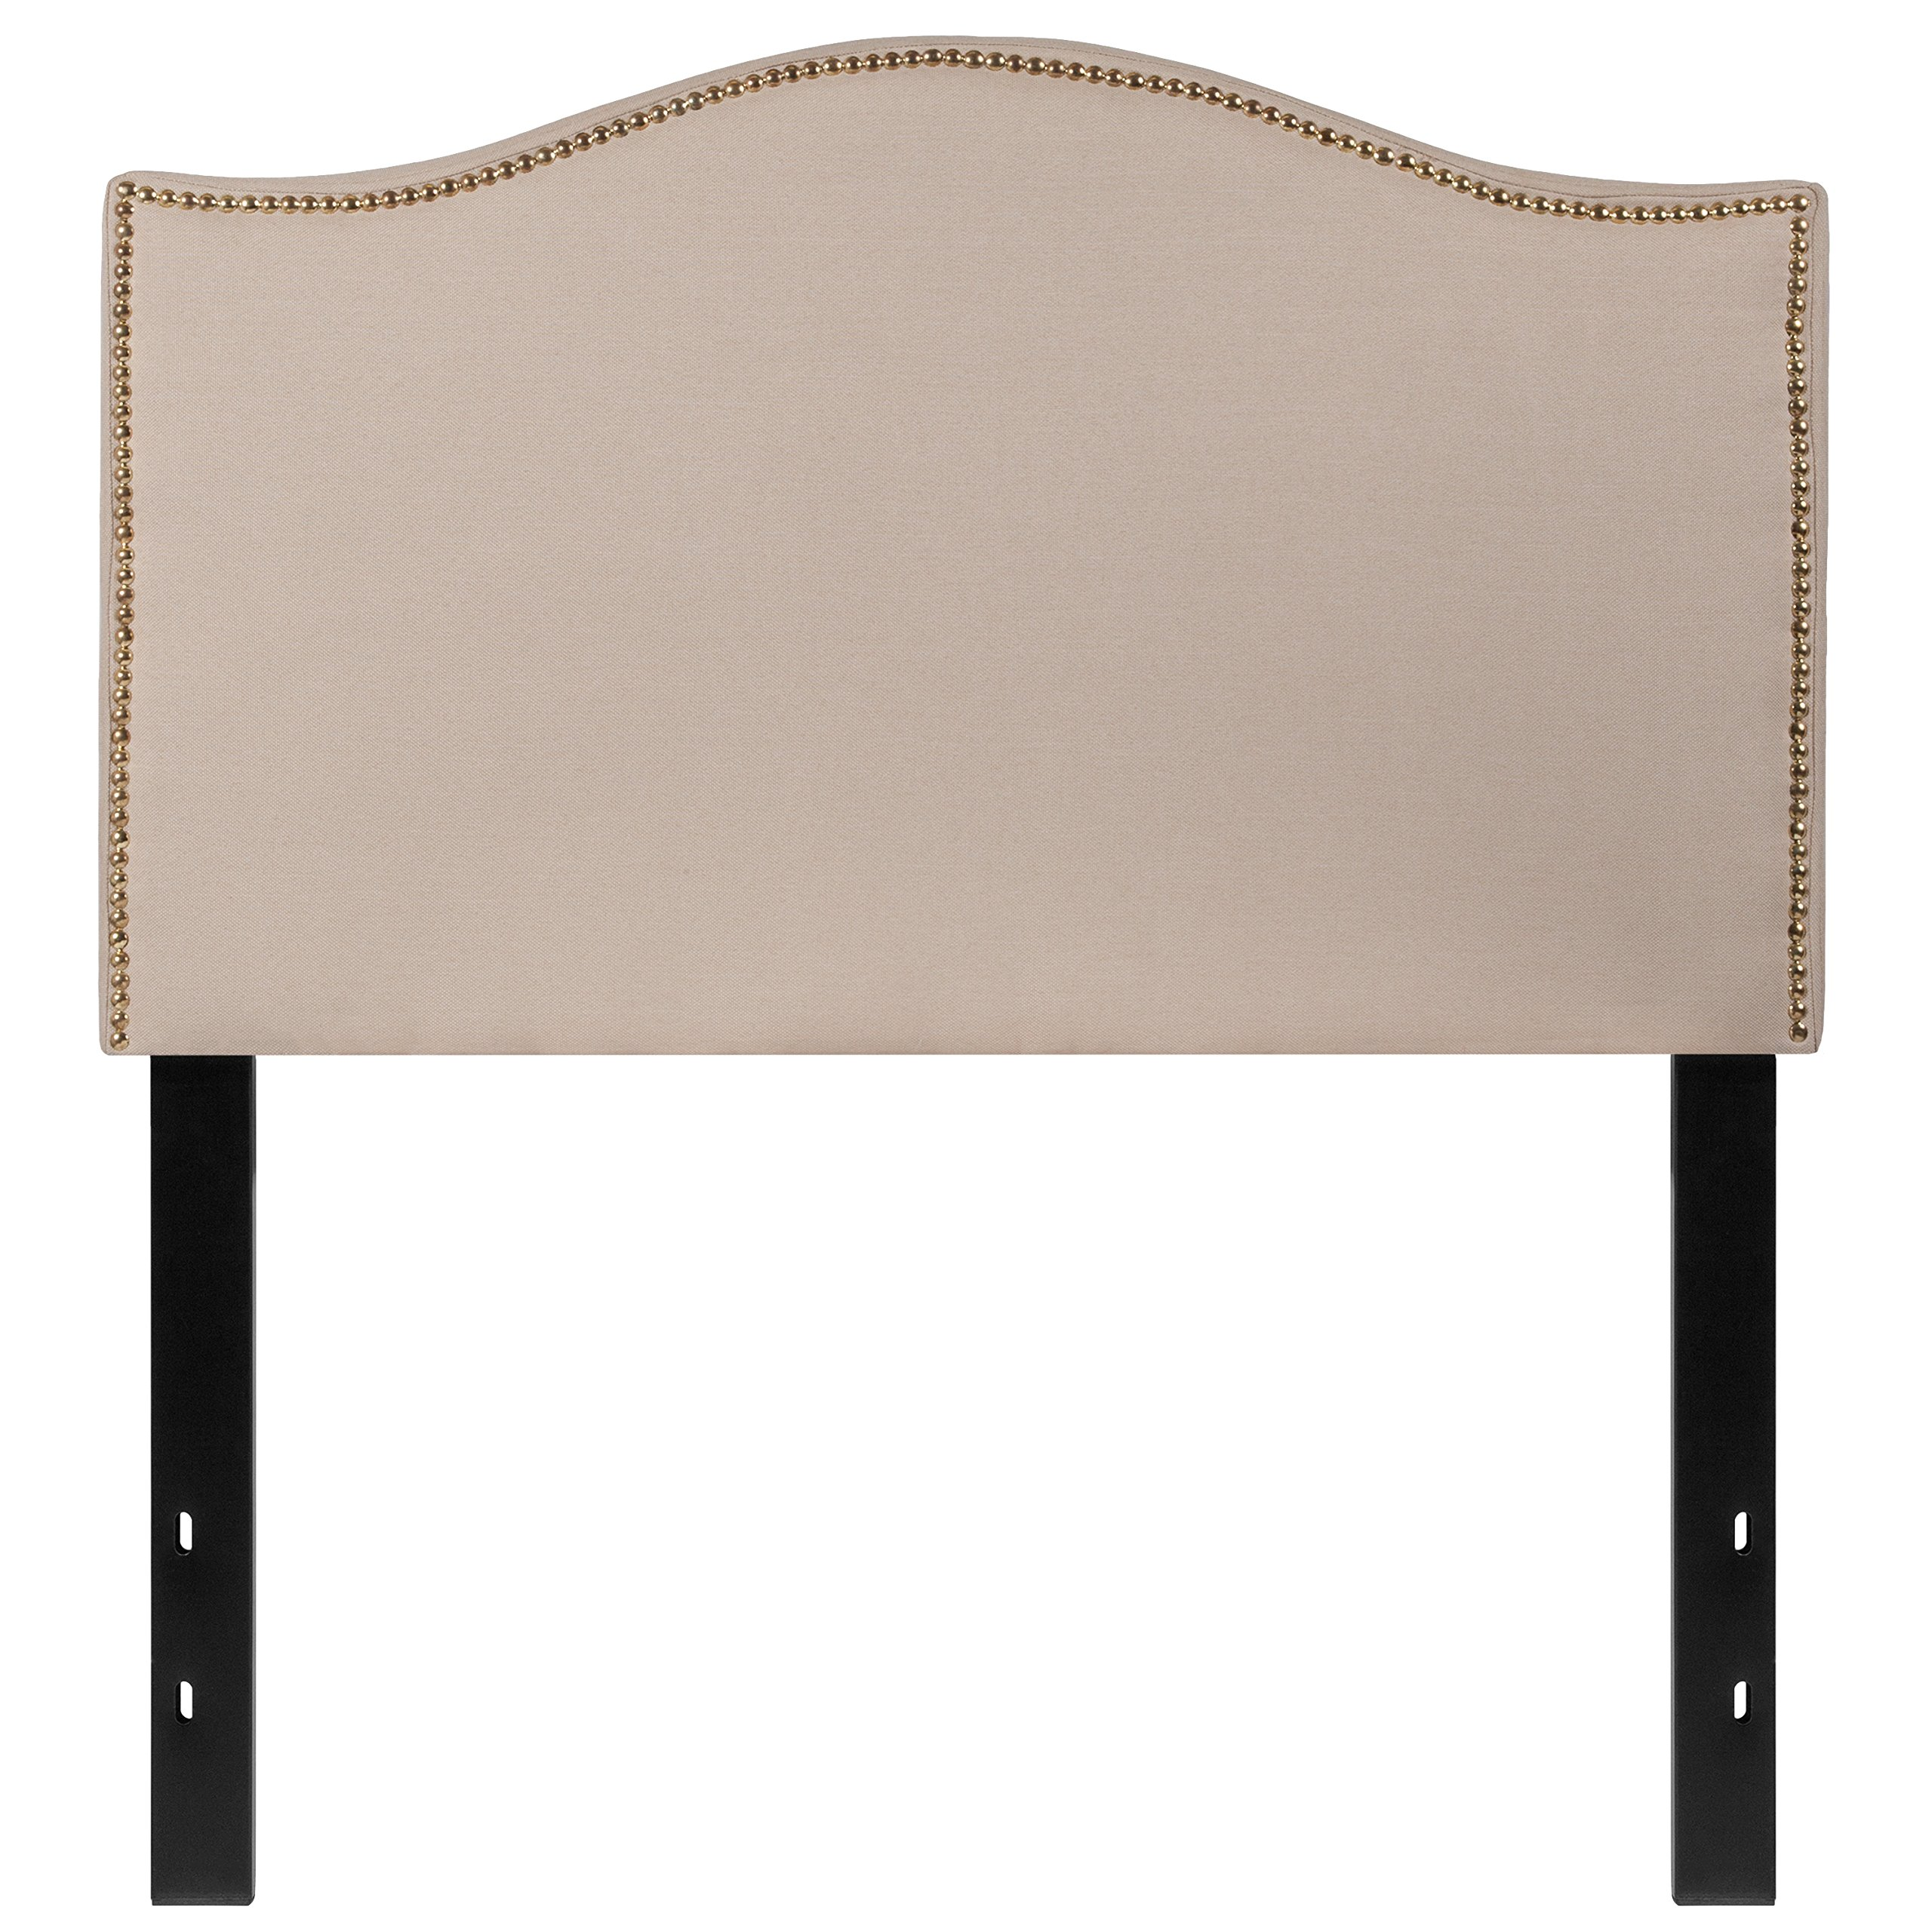 Flash Furniture Lexington Upholstered Twin Size Headboard with Decorative Nail Trim in Beige Fabric